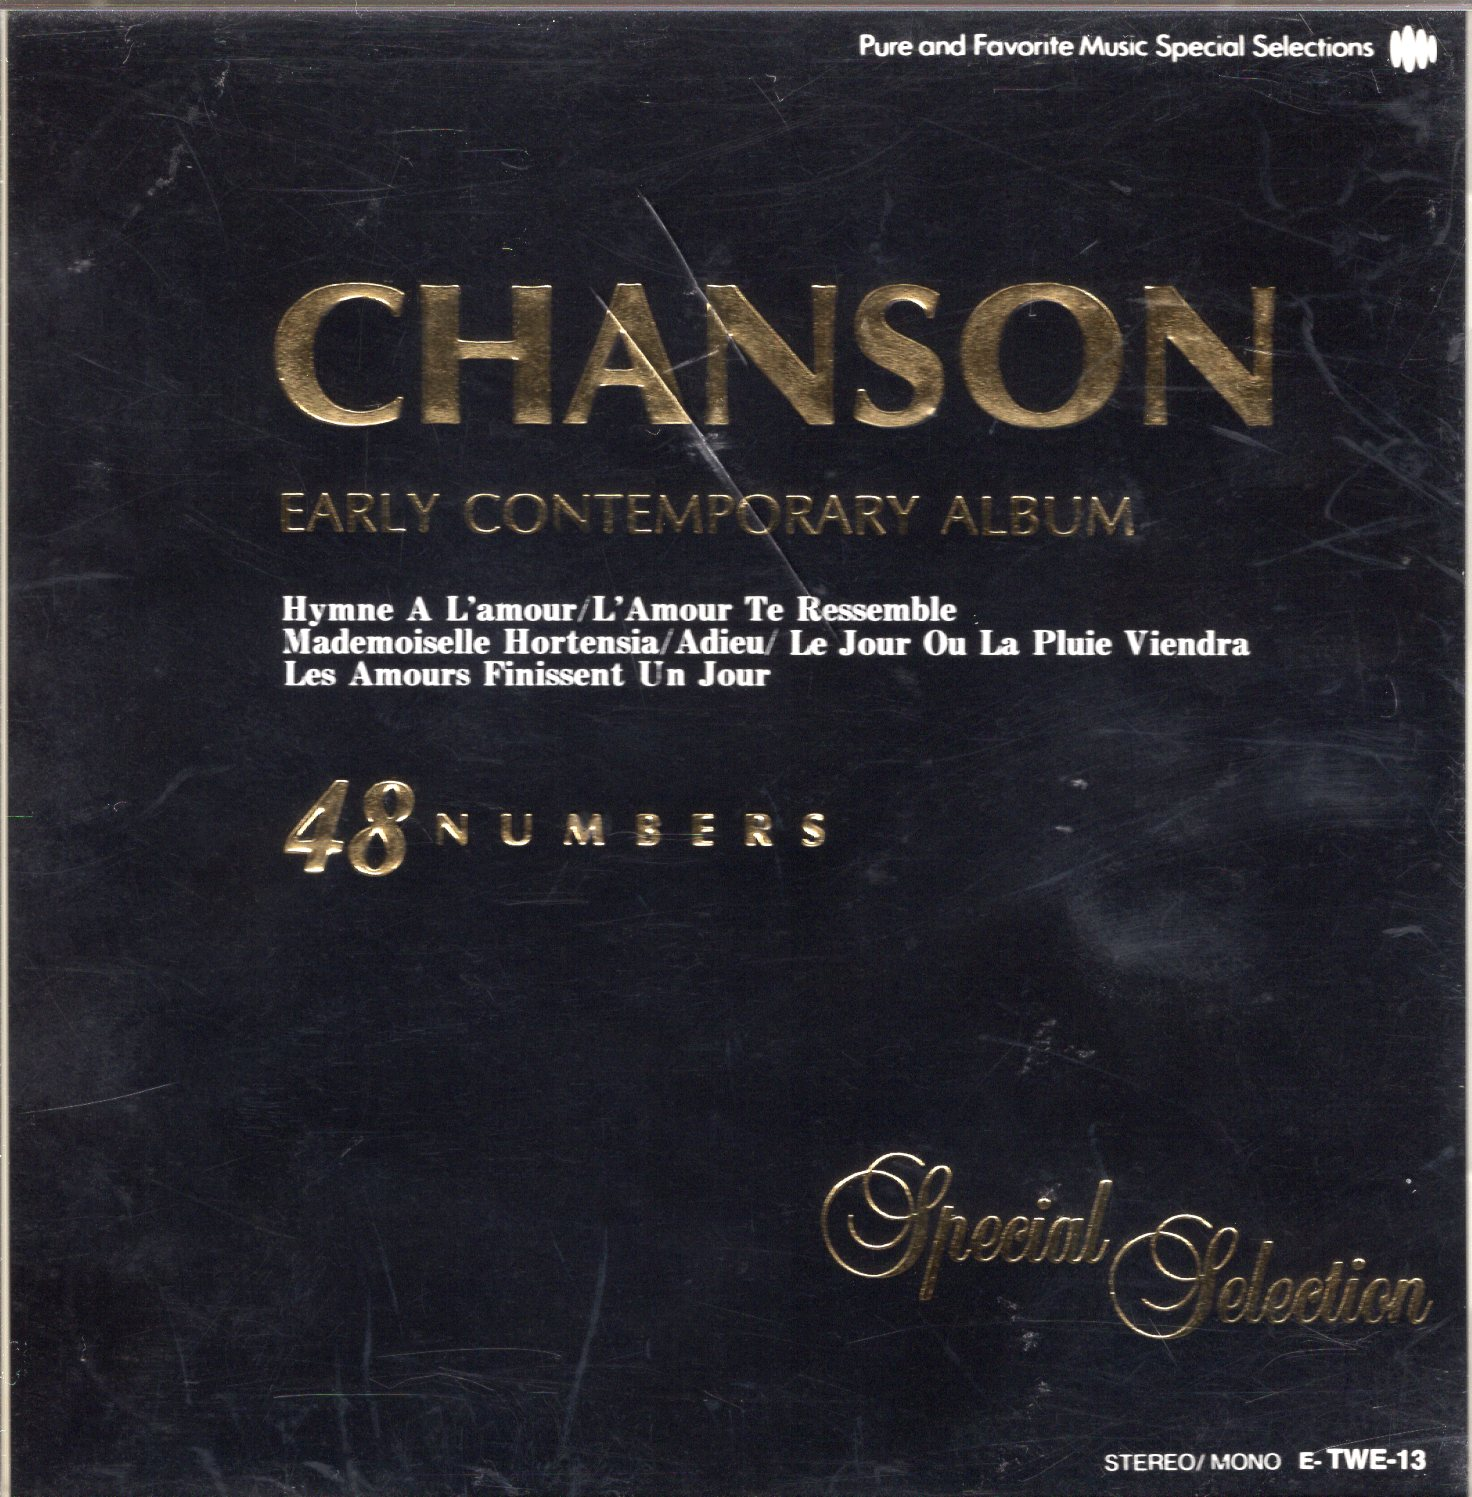 """Chanson Early Contemporary Album 48 Numbers"""